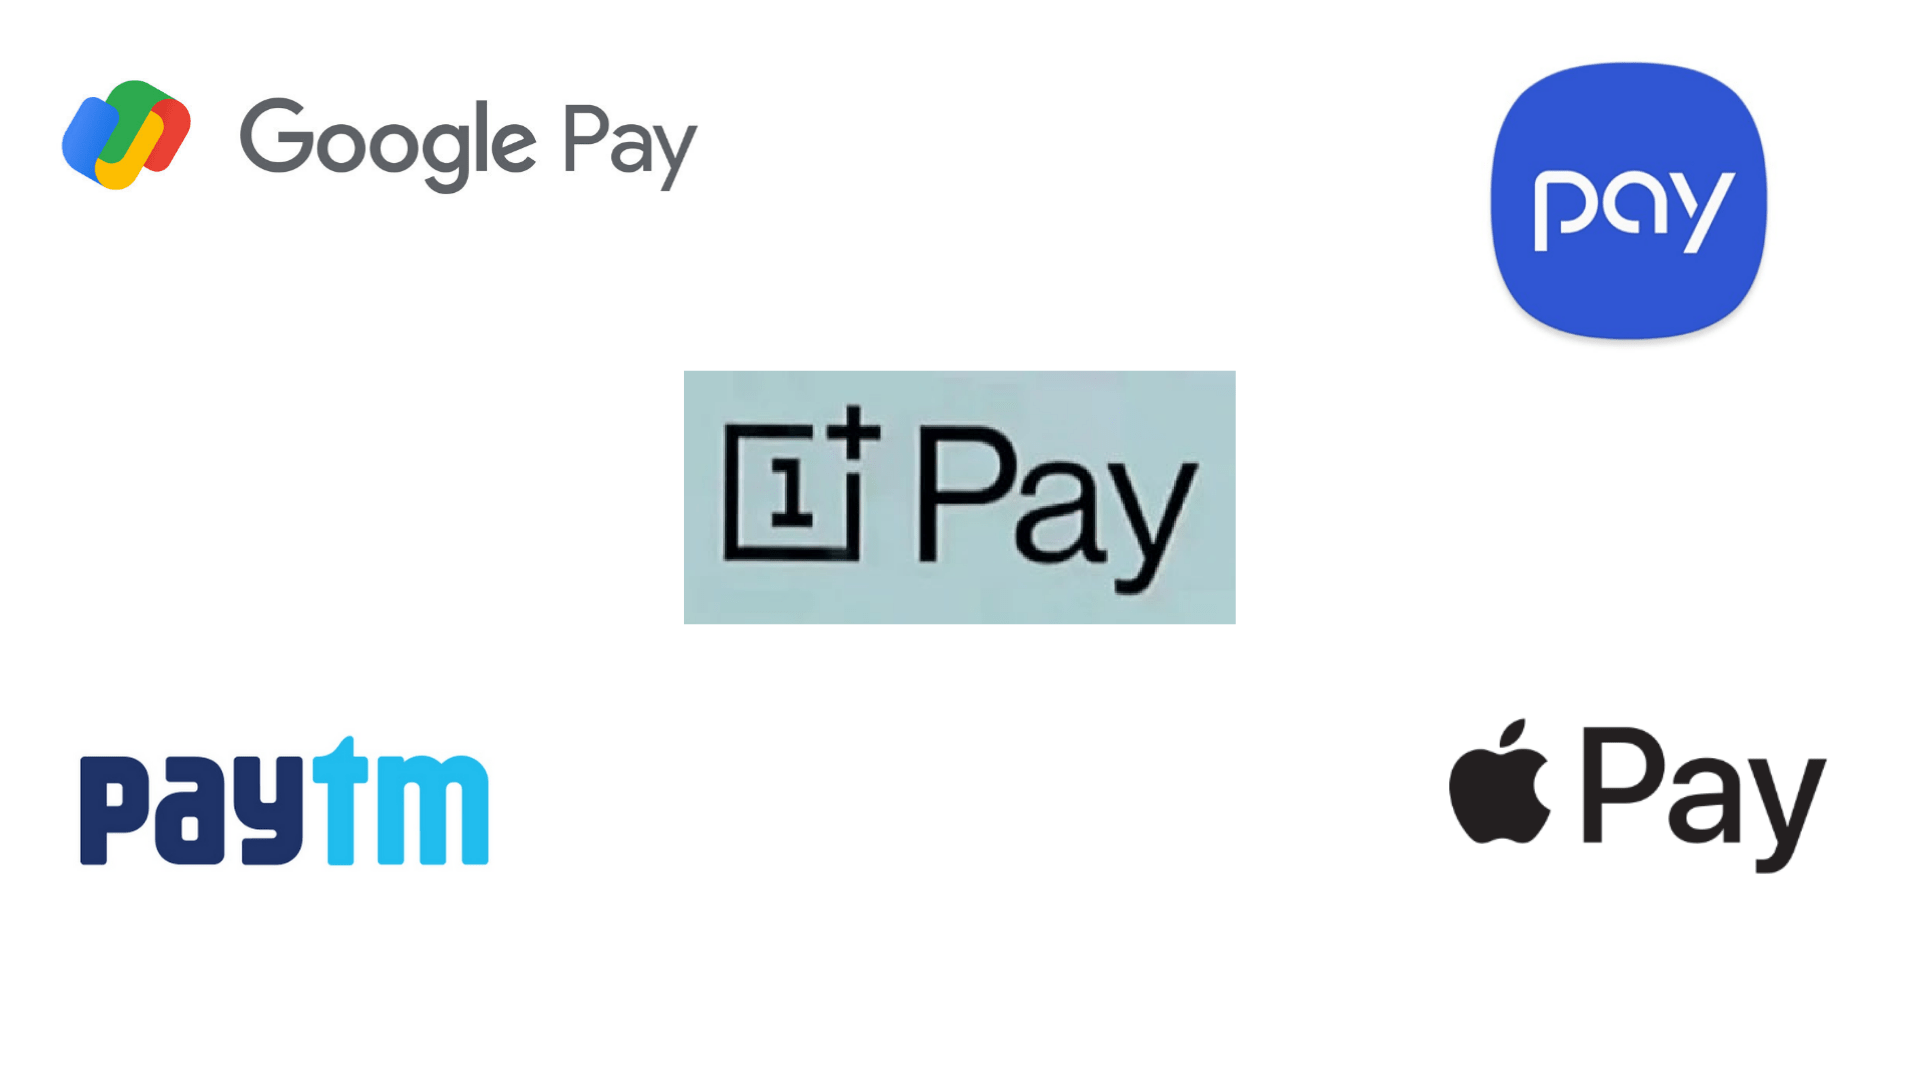 OnePlus Pay To Compete Aganist Massive Digital Payment Competitors In India Which Includes Apple Pay, Samsung Pay, Google Pay, and PayTm